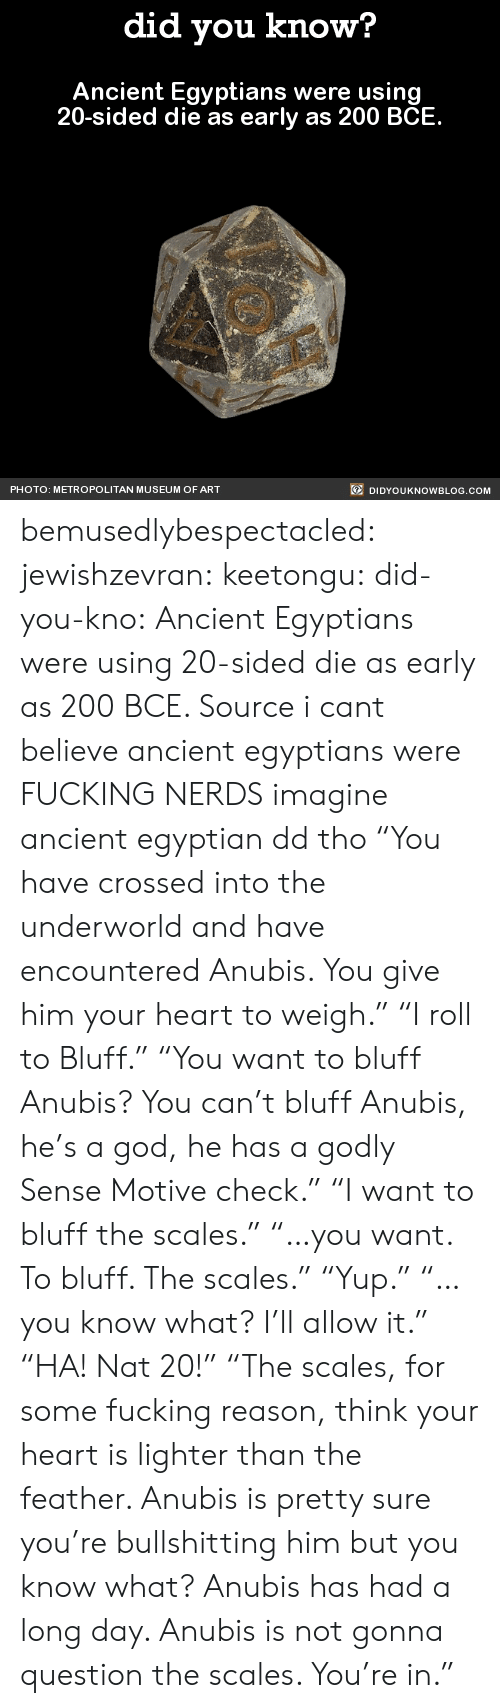 "Bailey Jay, Fucking, and God: did you know?  Ancient Egyptians were using  20-sided die as early as 200 BCE  PHOTO: METROPOLITAN MUSEUM OF ART  DIDYOUKNOWBLOG.COM bemusedlybespectacled:  jewishzevran:  keetongu:  did-you-kno:  Ancient Egyptians were using  20-sided die as early as 200 BCE.  Source  i cant believe ancient egyptians were FUCKING NERDS  imagine ancient egyptian dd tho  ""You have crossed into the underworld and have encountered Anubis. You give him your heart to weigh."" ""I roll to Bluff."" ""You want to bluff Anubis? You can't bluff Anubis, he's a god, he has a godly Sense Motive check."" ""I want to bluff the scales."" ""…you want. To bluff. The scales."" ""Yup."" ""…you know what? I'll allow it."" ""HA! Nat 20!"" ""The scales, for some fucking reason, think your heart is lighter than the feather. Anubis is pretty sure you're bullshitting him but you know what? Anubis has had a long day. Anubis is not gonna question the scales. You're in."""